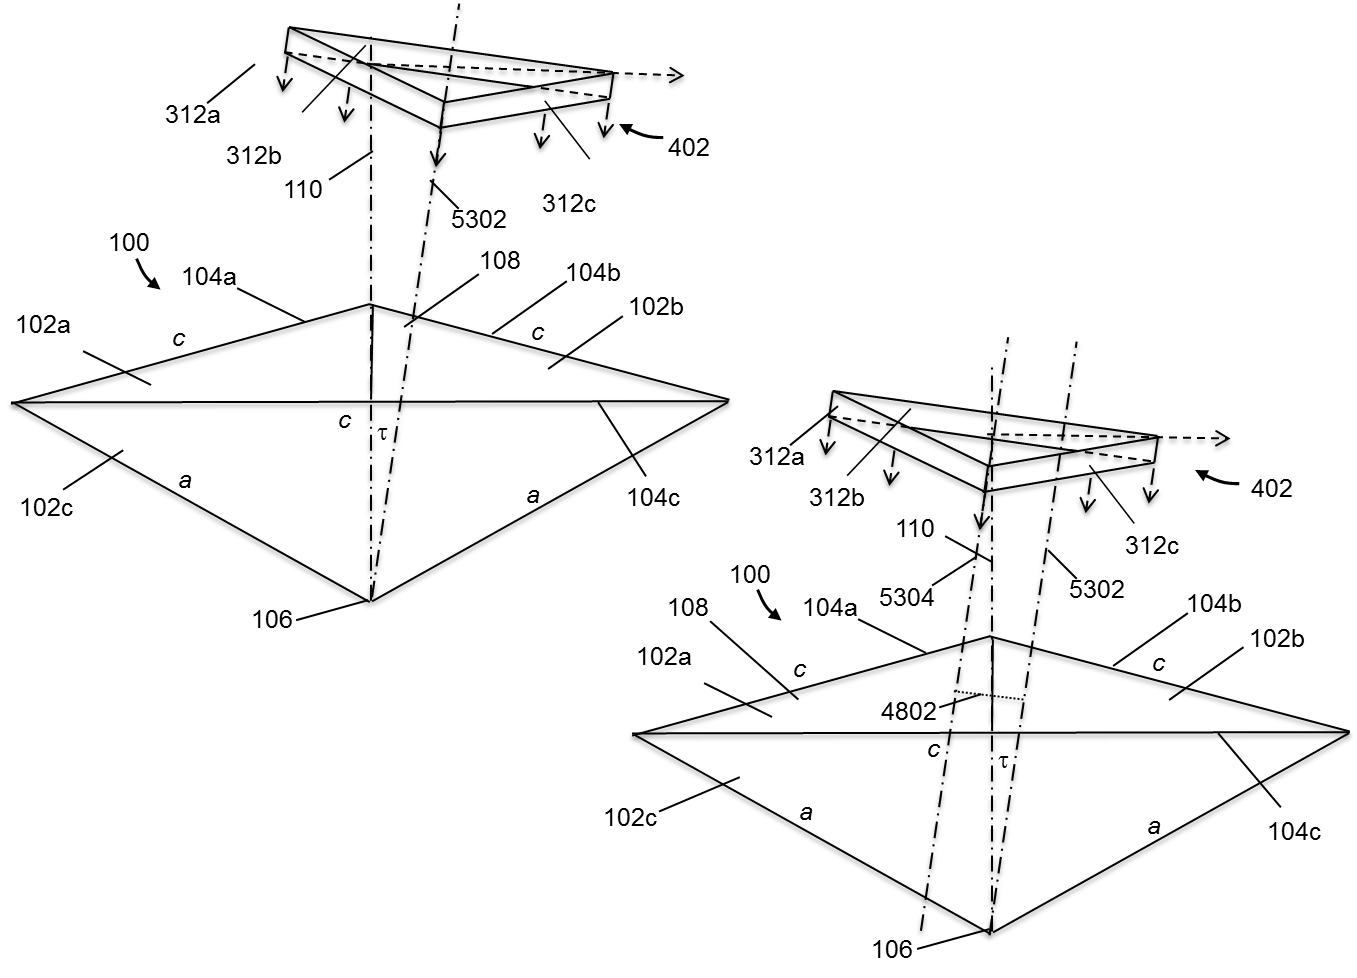 Figure 2. Non-vertical Truncation without and with an Offset from the Symmetrical Axis